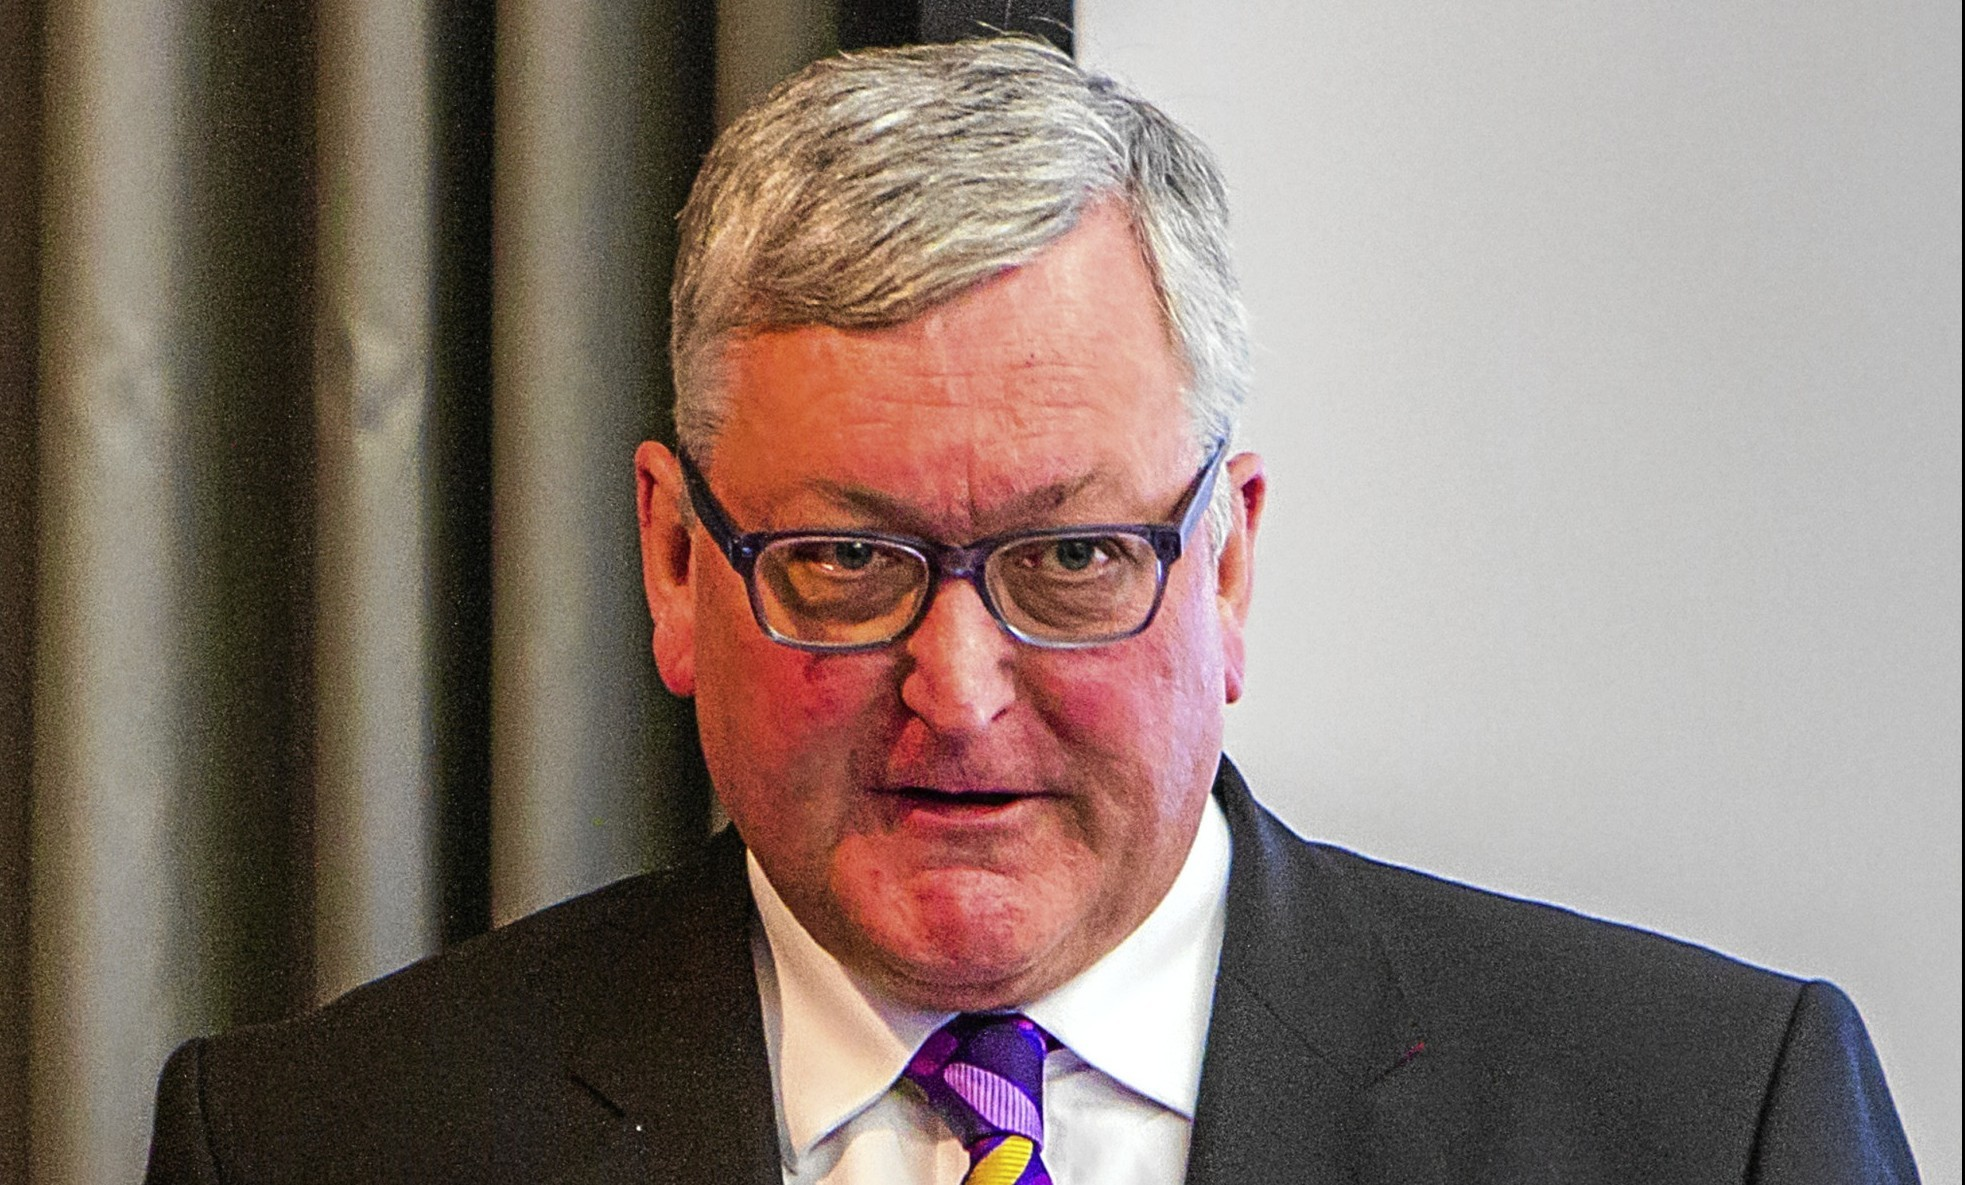 Rural Secretary Fergus Ewing will meet Defra Secretary Michael Gove in London